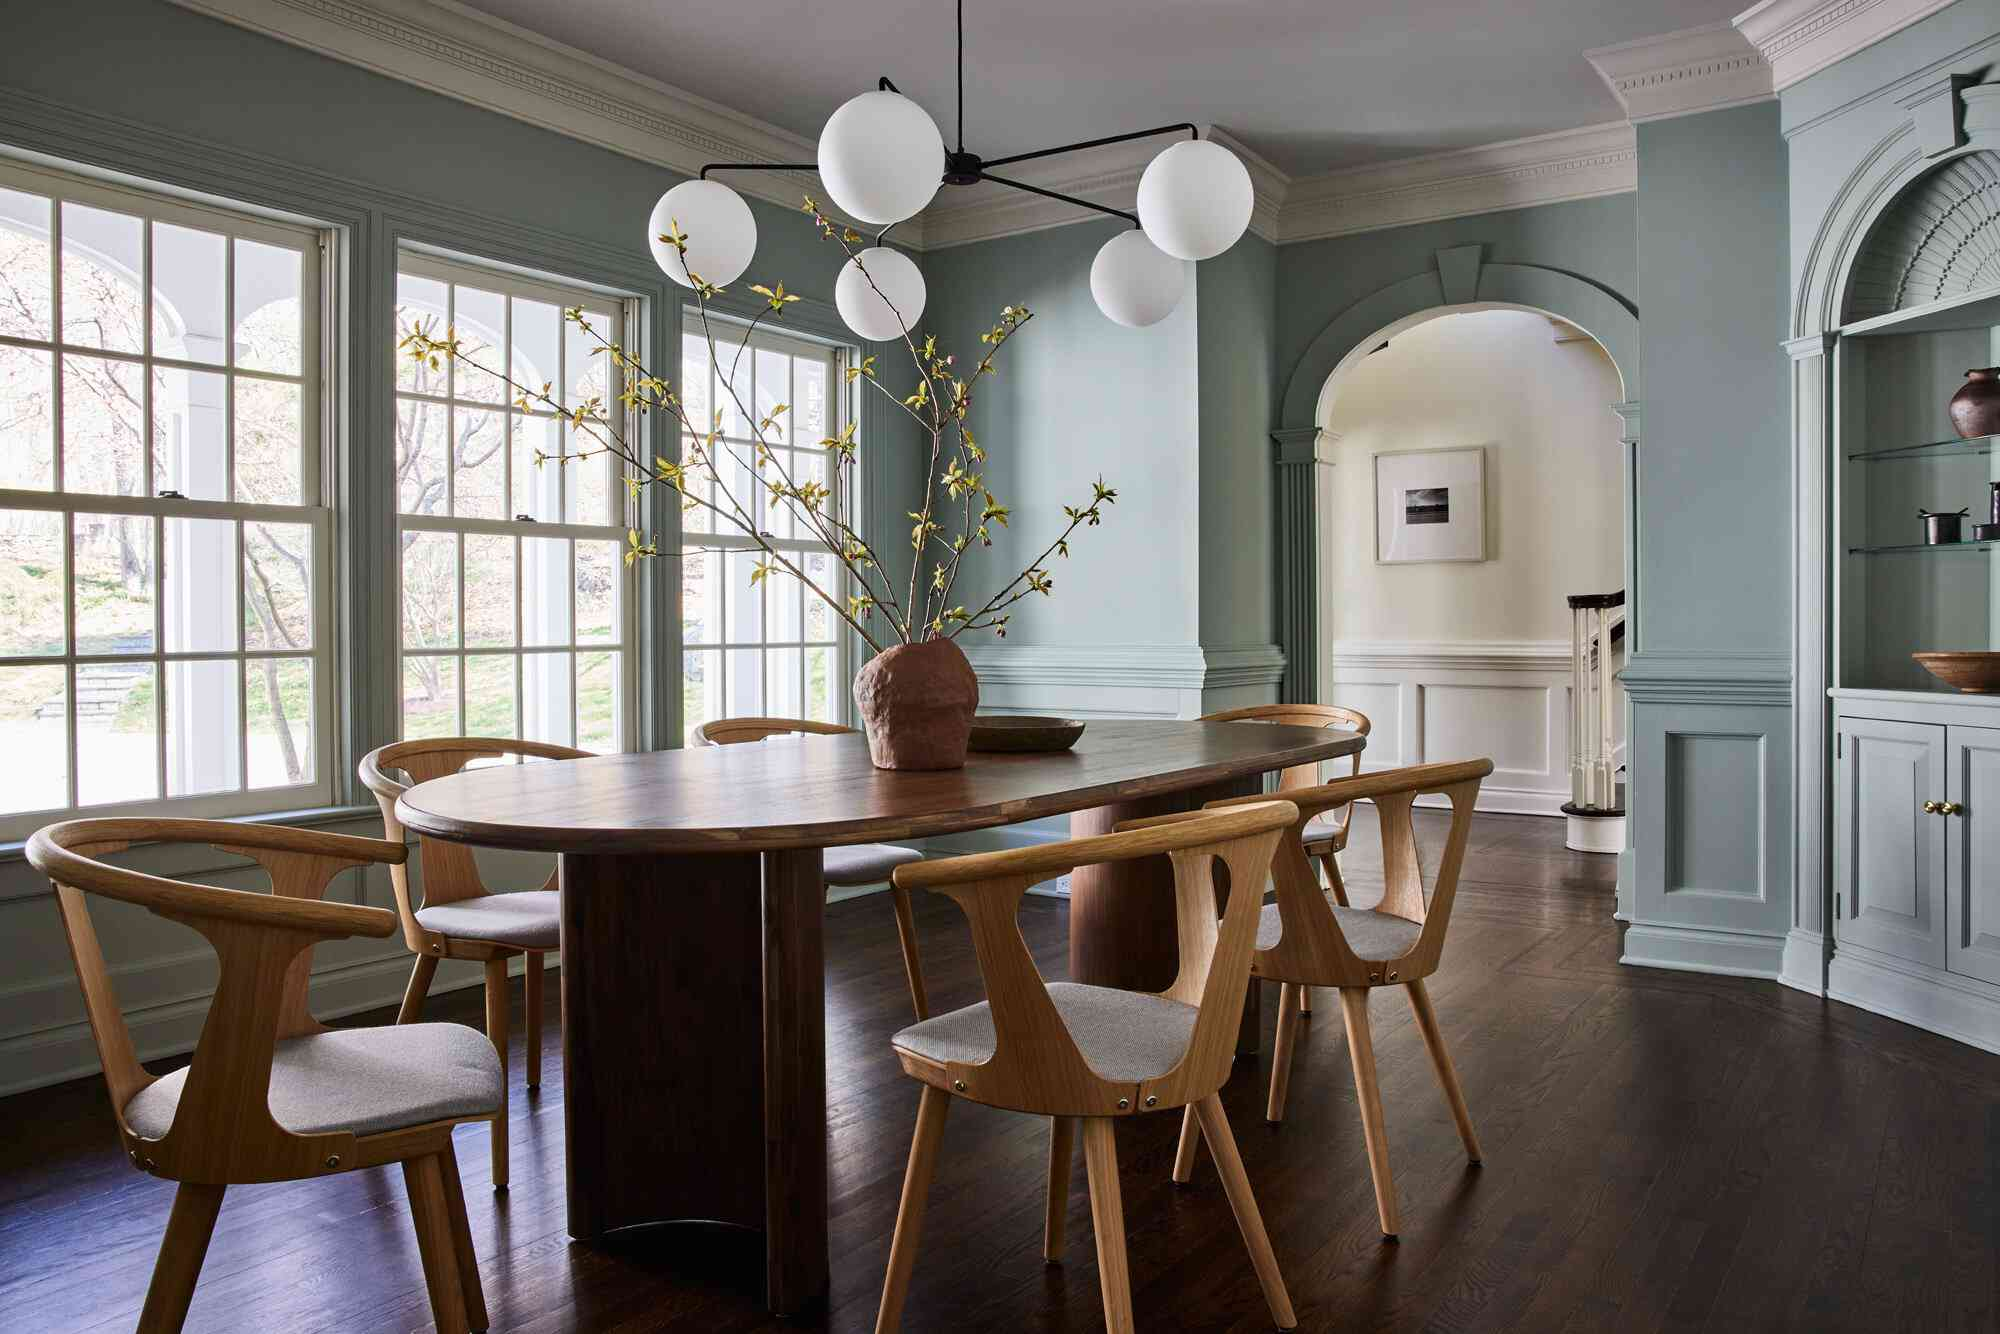 Minty dining room